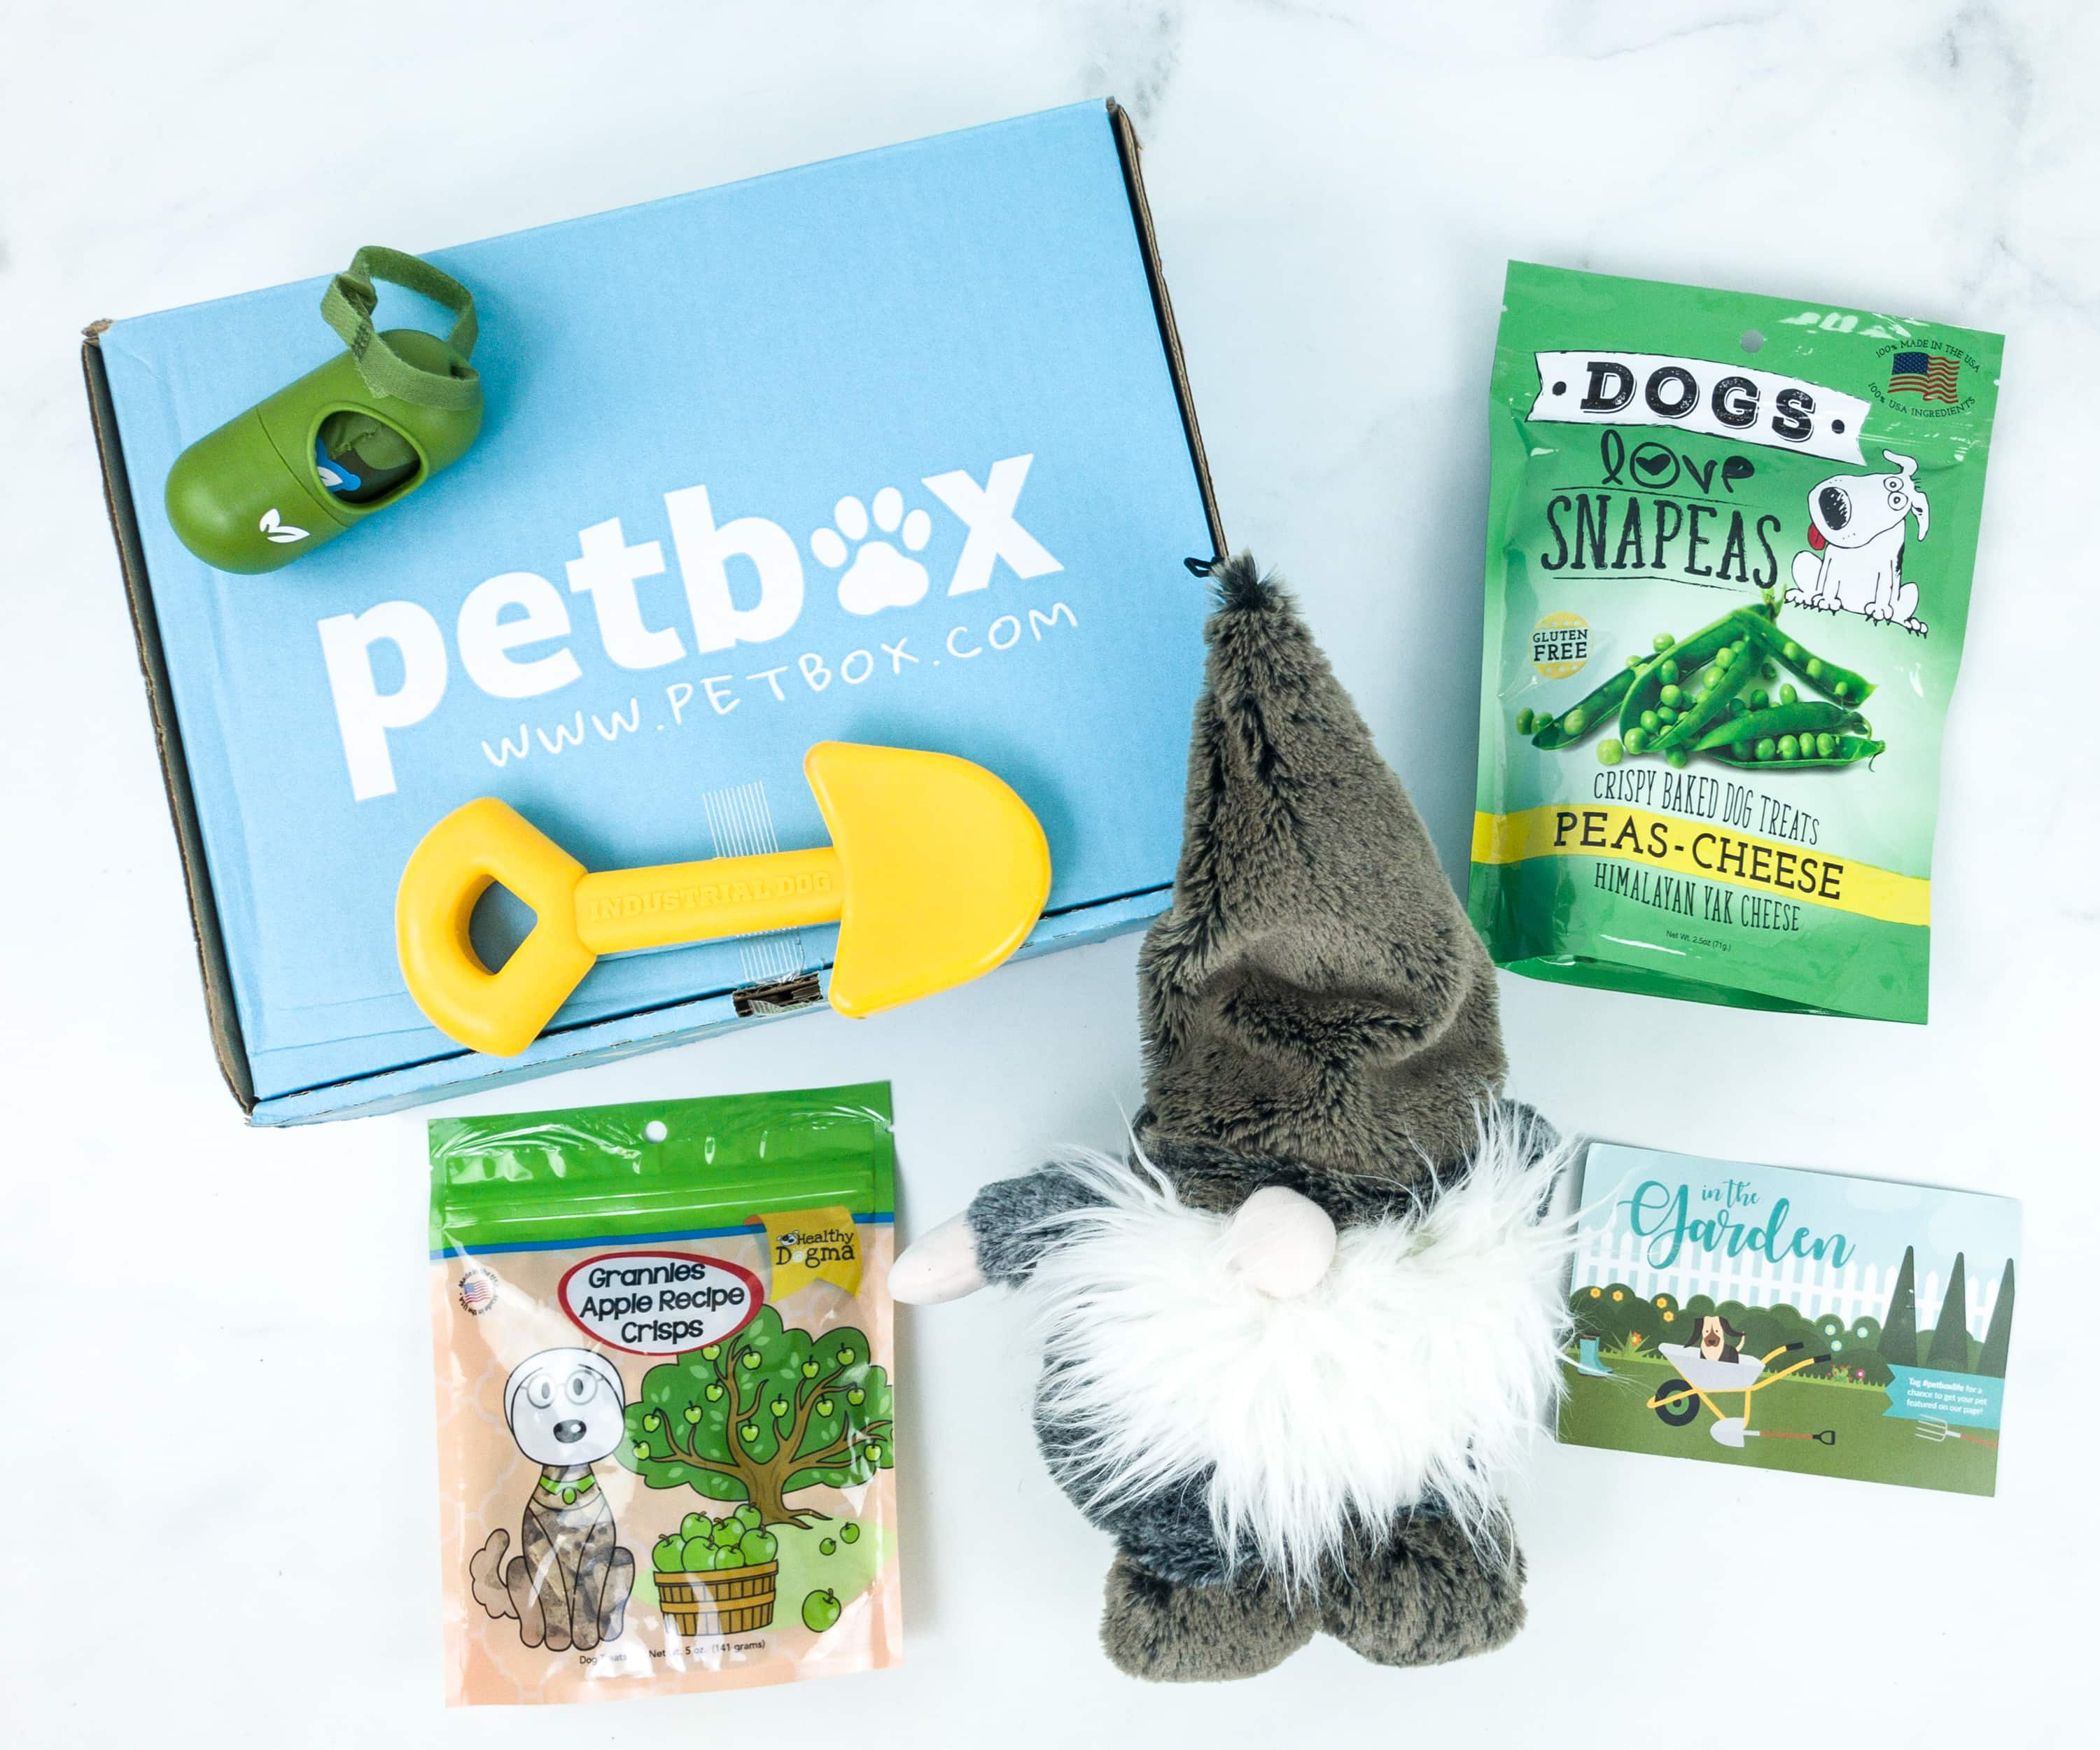 PetBox July 2019 Subscription Review & 50% Off Coupon Code – Large Dog